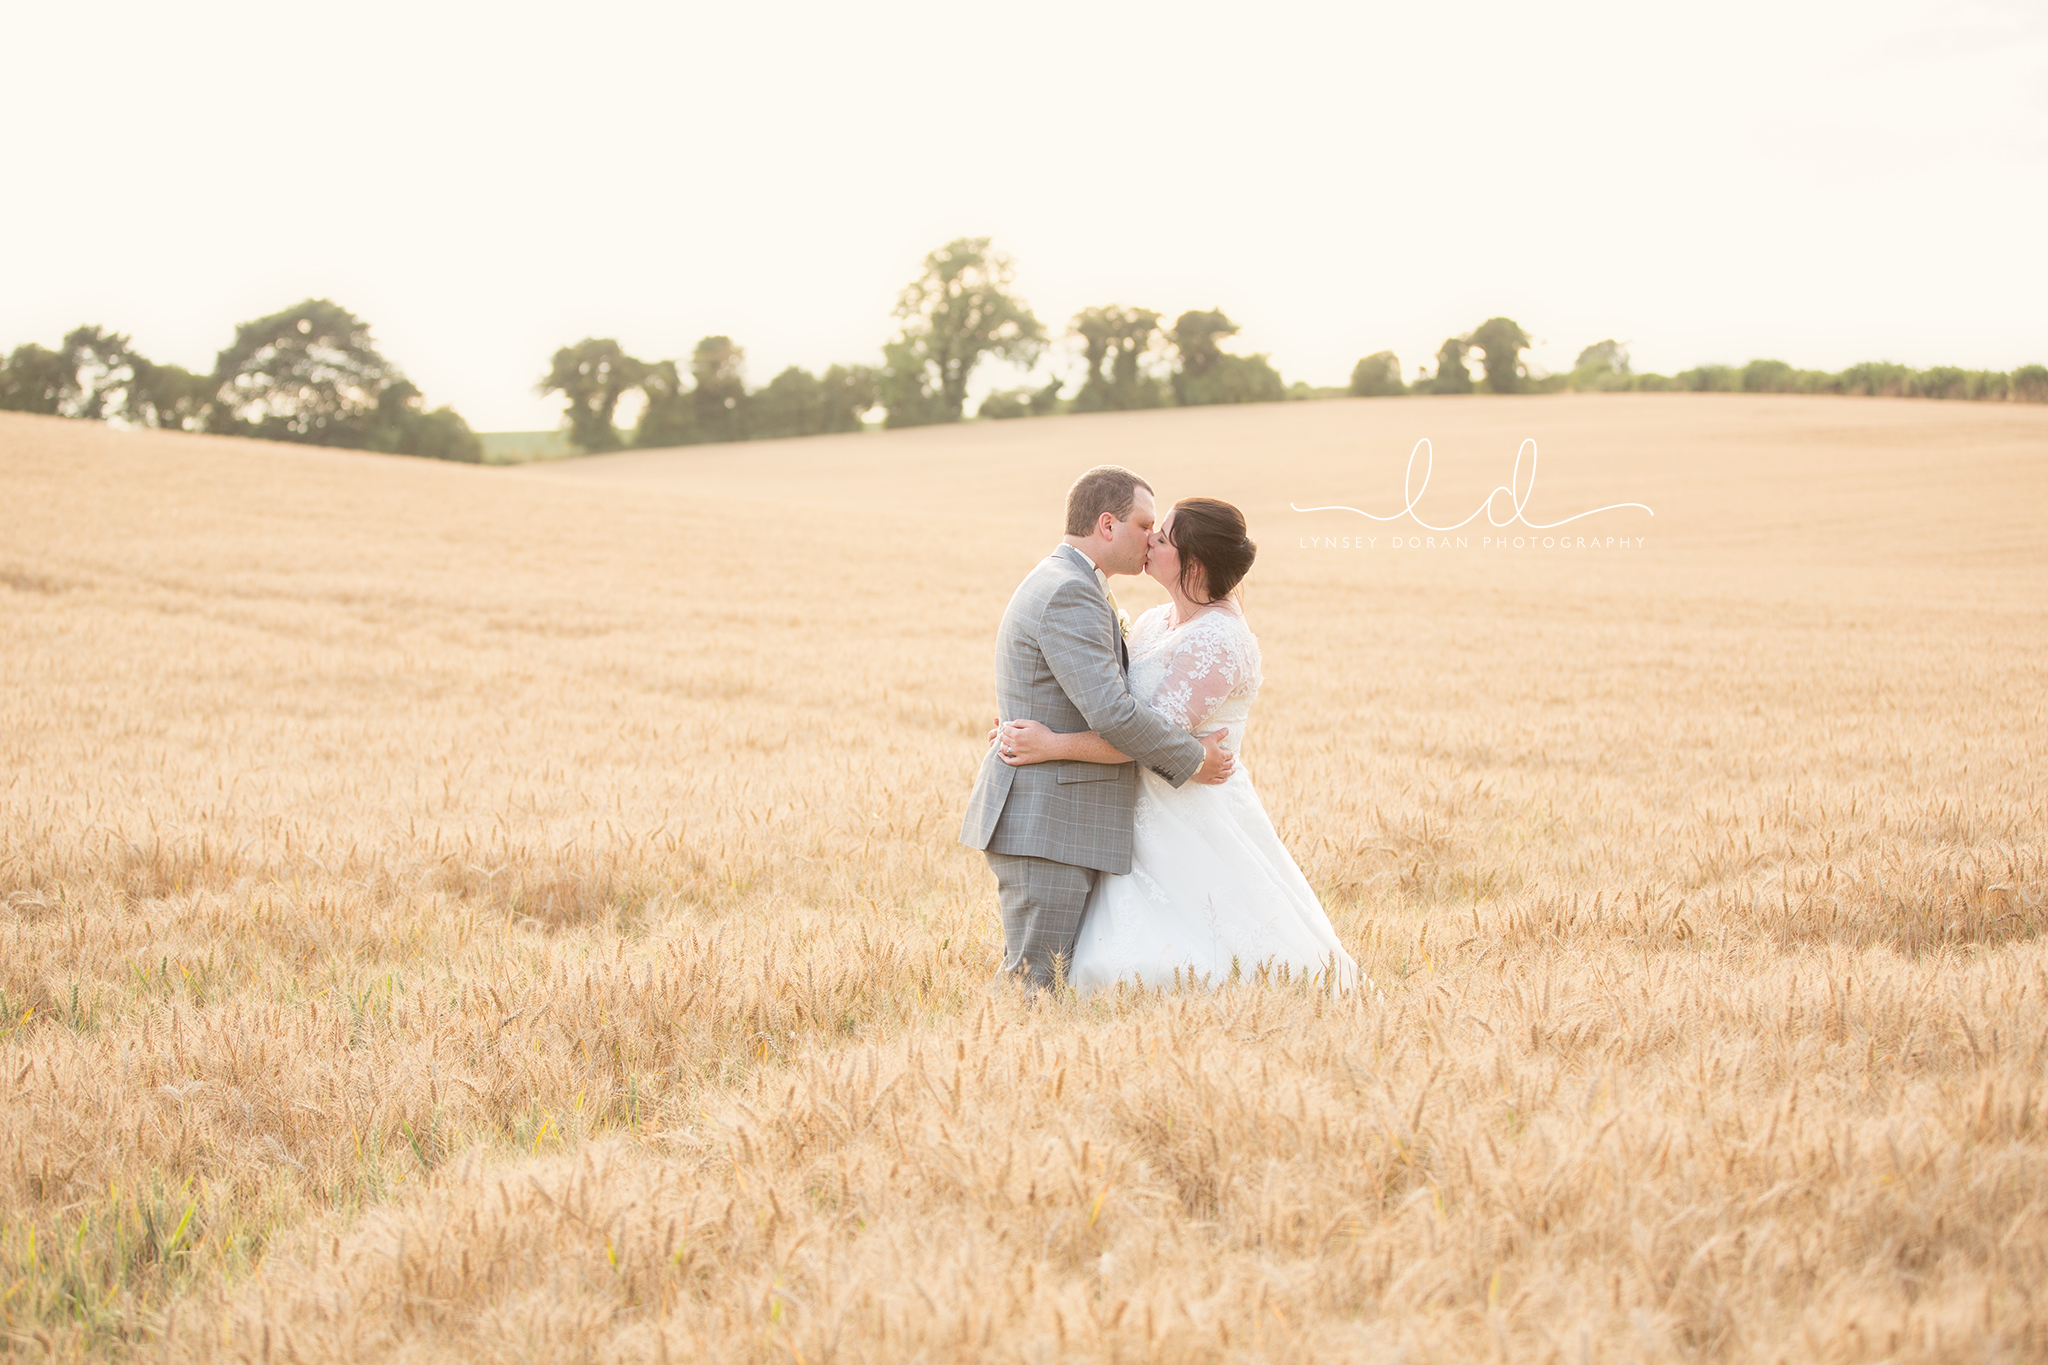 linton Wedding photographers near wetherby